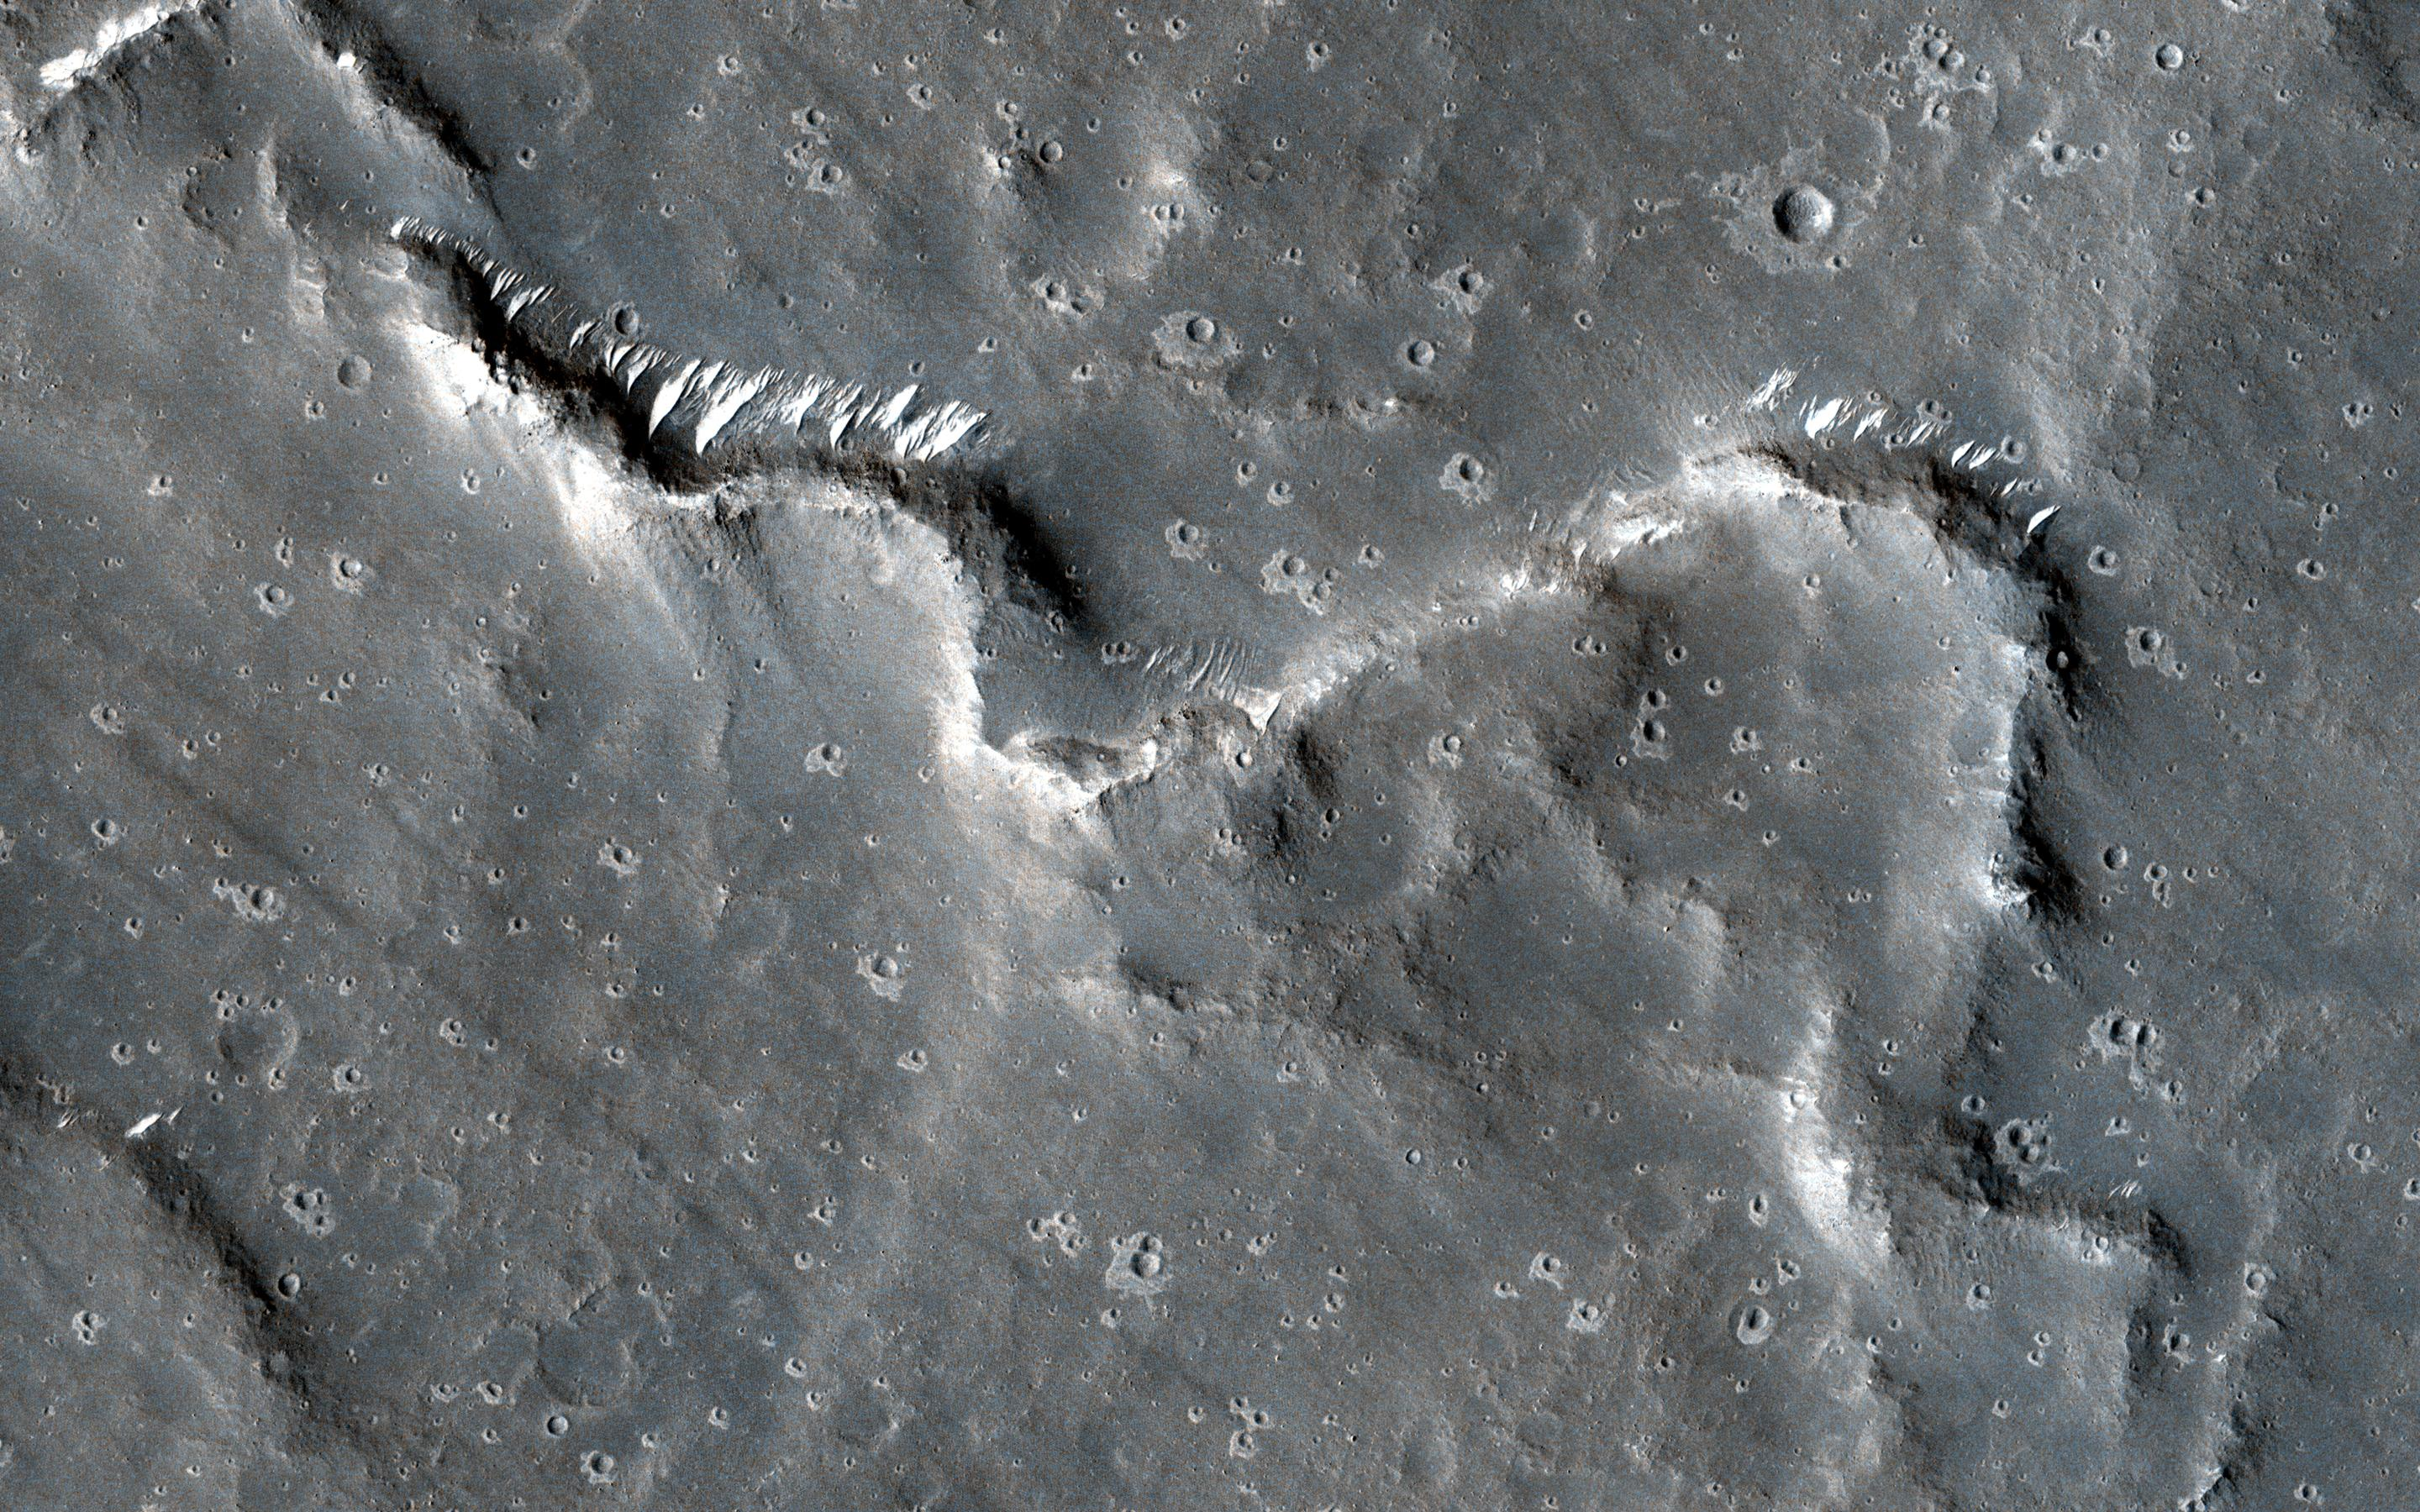 This image acquired on January 31, 2021 by NASAs Mars Reconnaissance Orbiter, shows a sinuous ridge that gives the appearance of a stream channel, but stays raised above the surface rather than incised into it.